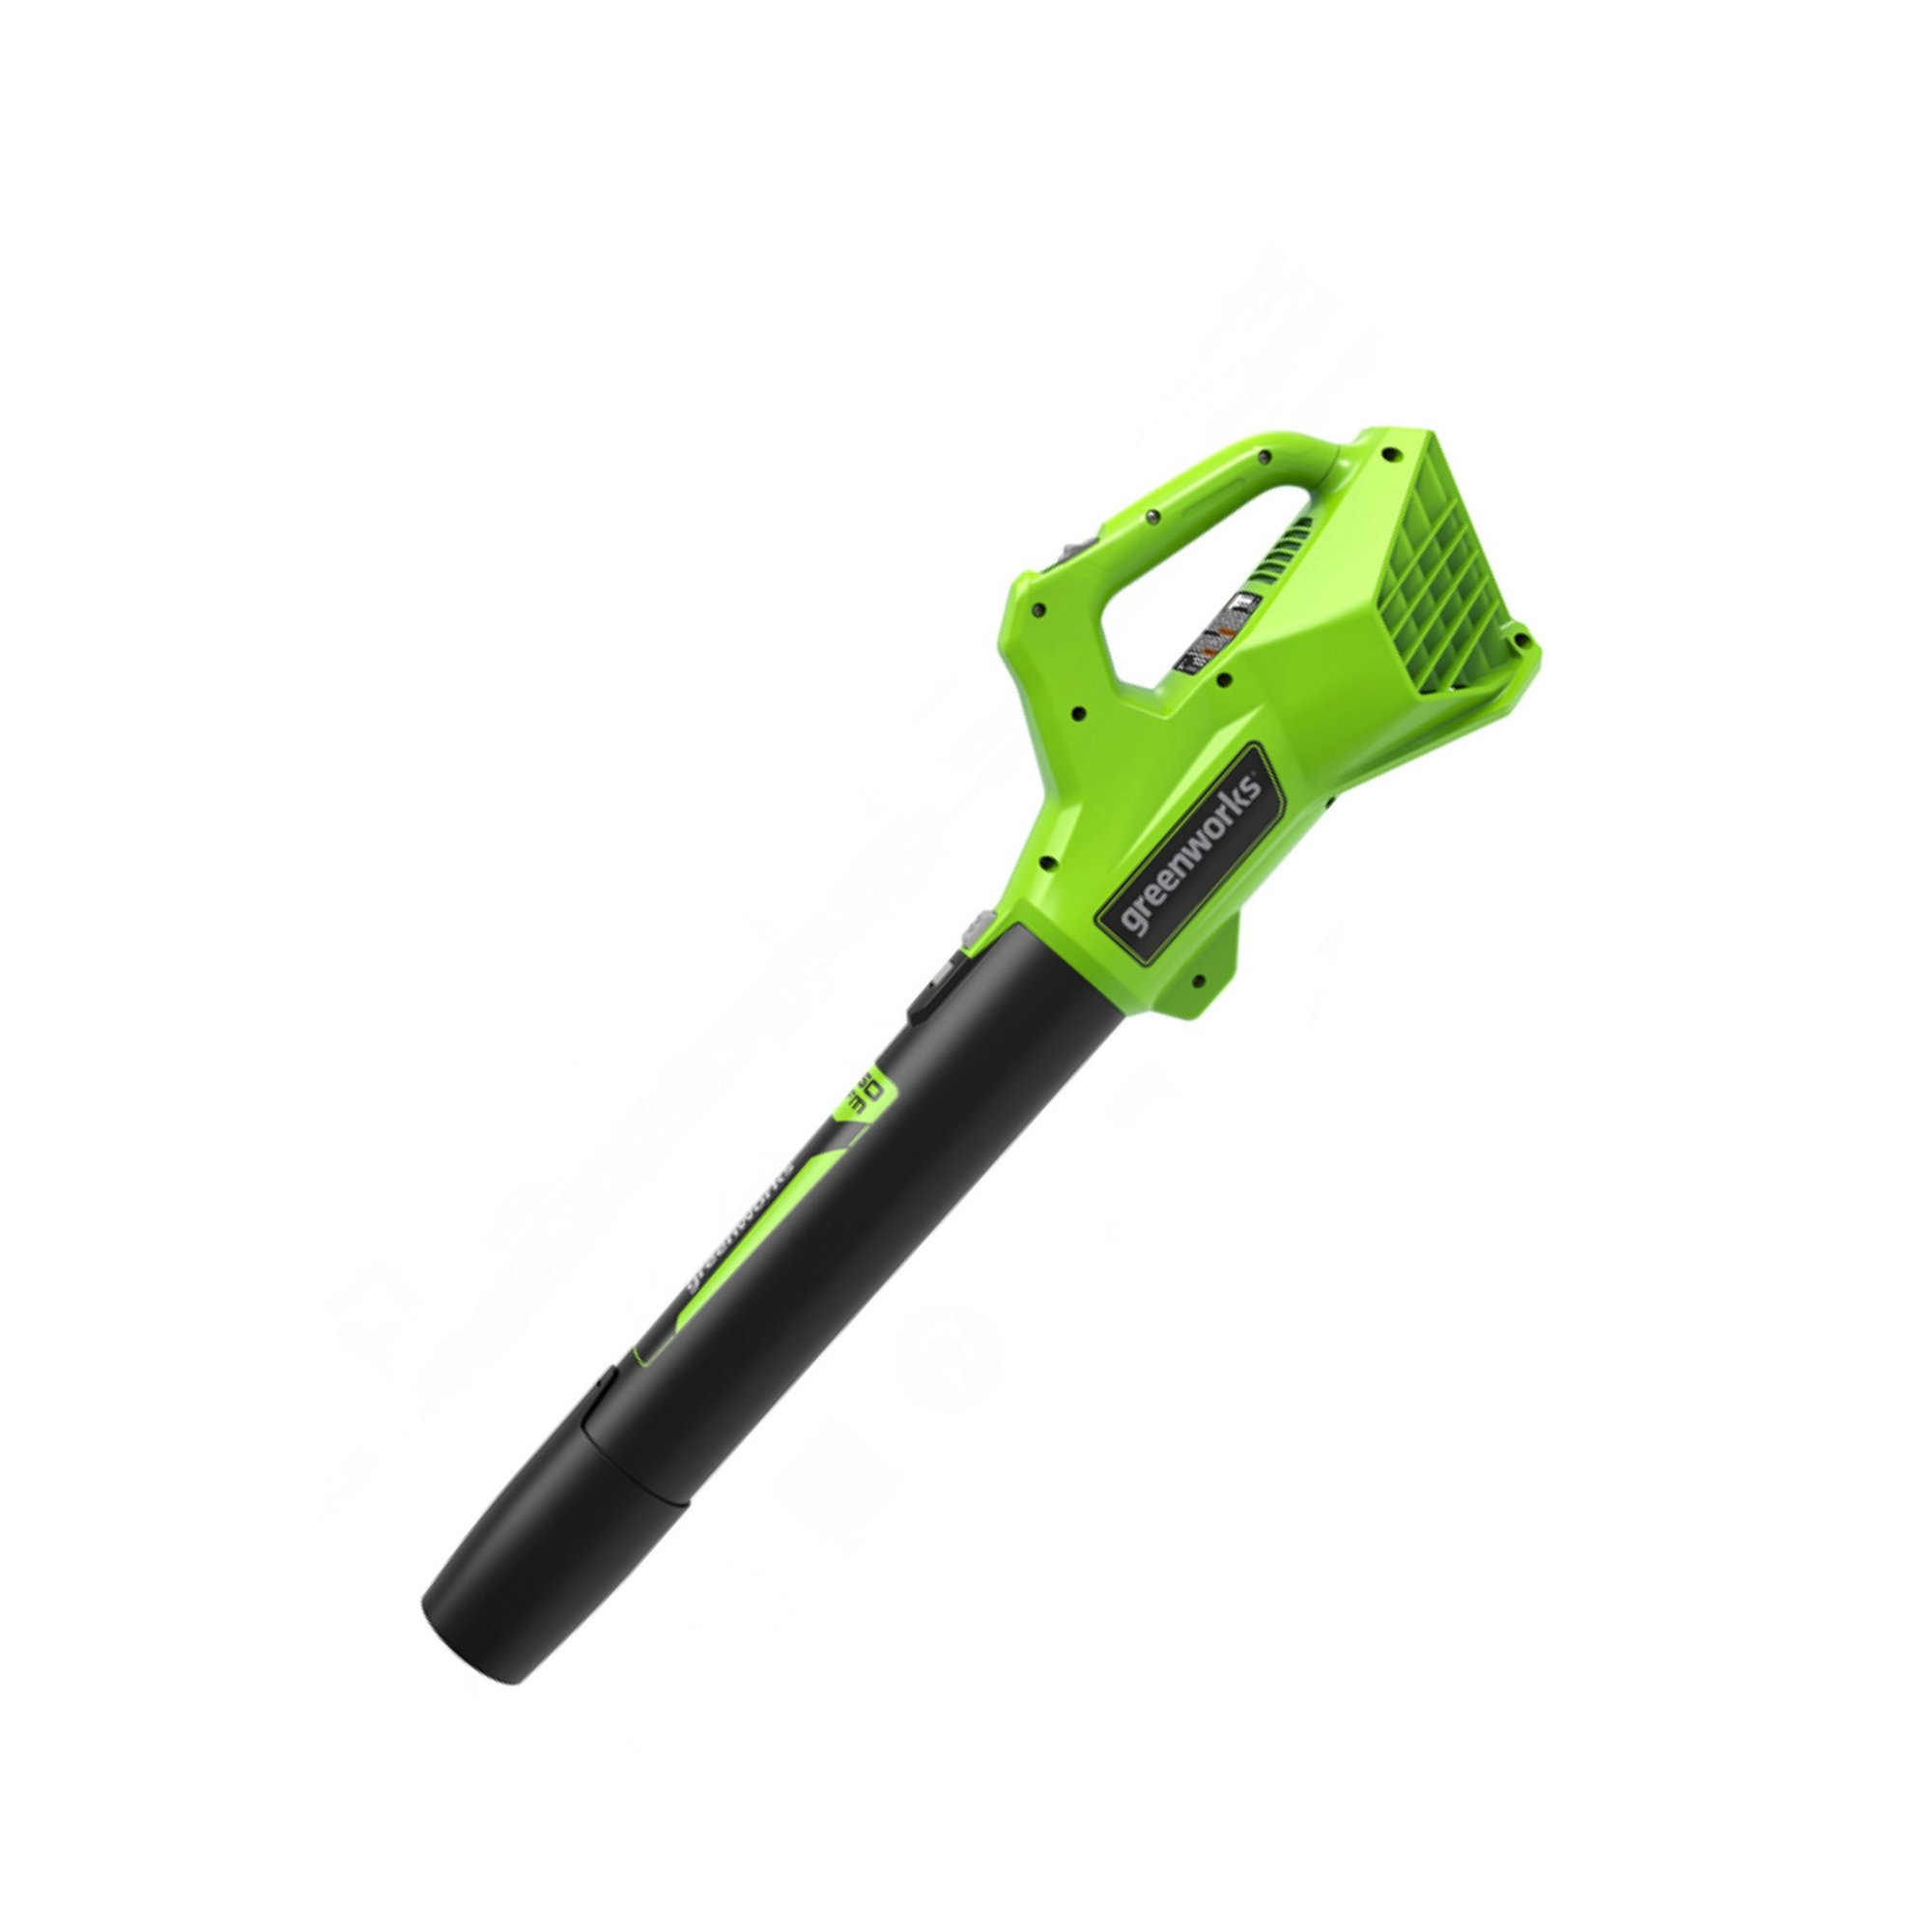 Image of Greenworks 24v Cordless Blower (Tool Only)